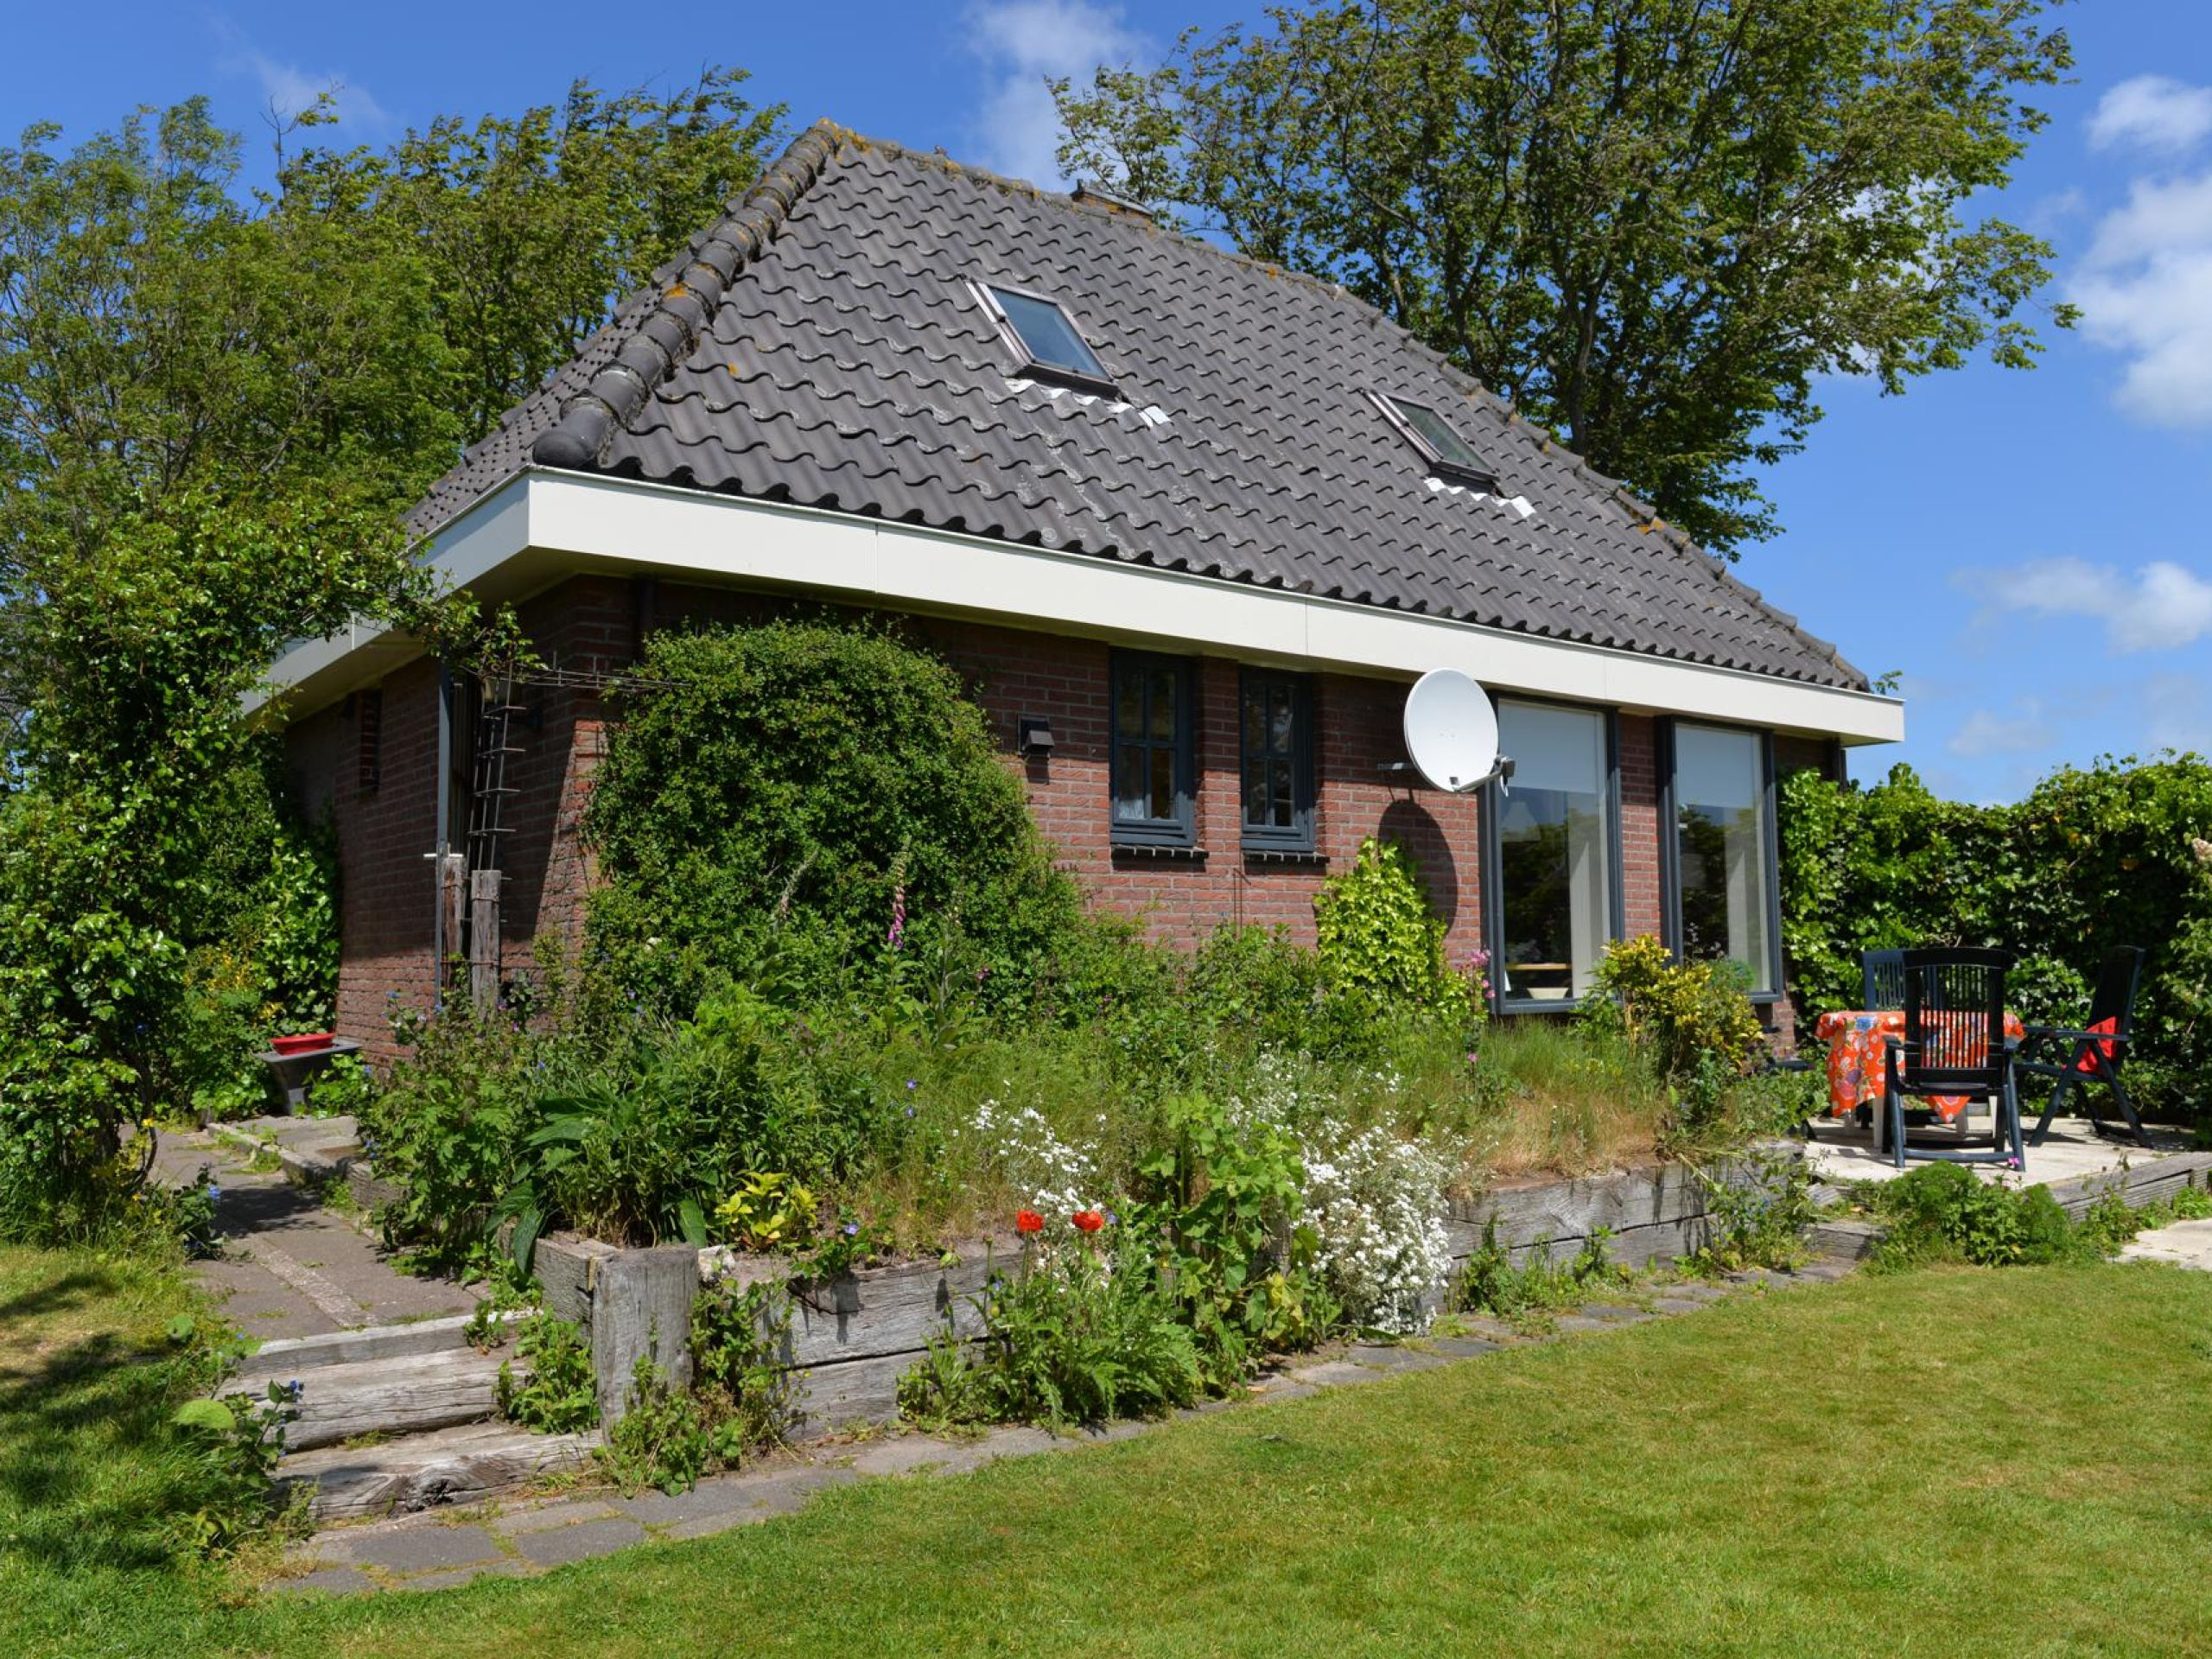 Rural cosy holiday home with lots of privacy near Den Burg